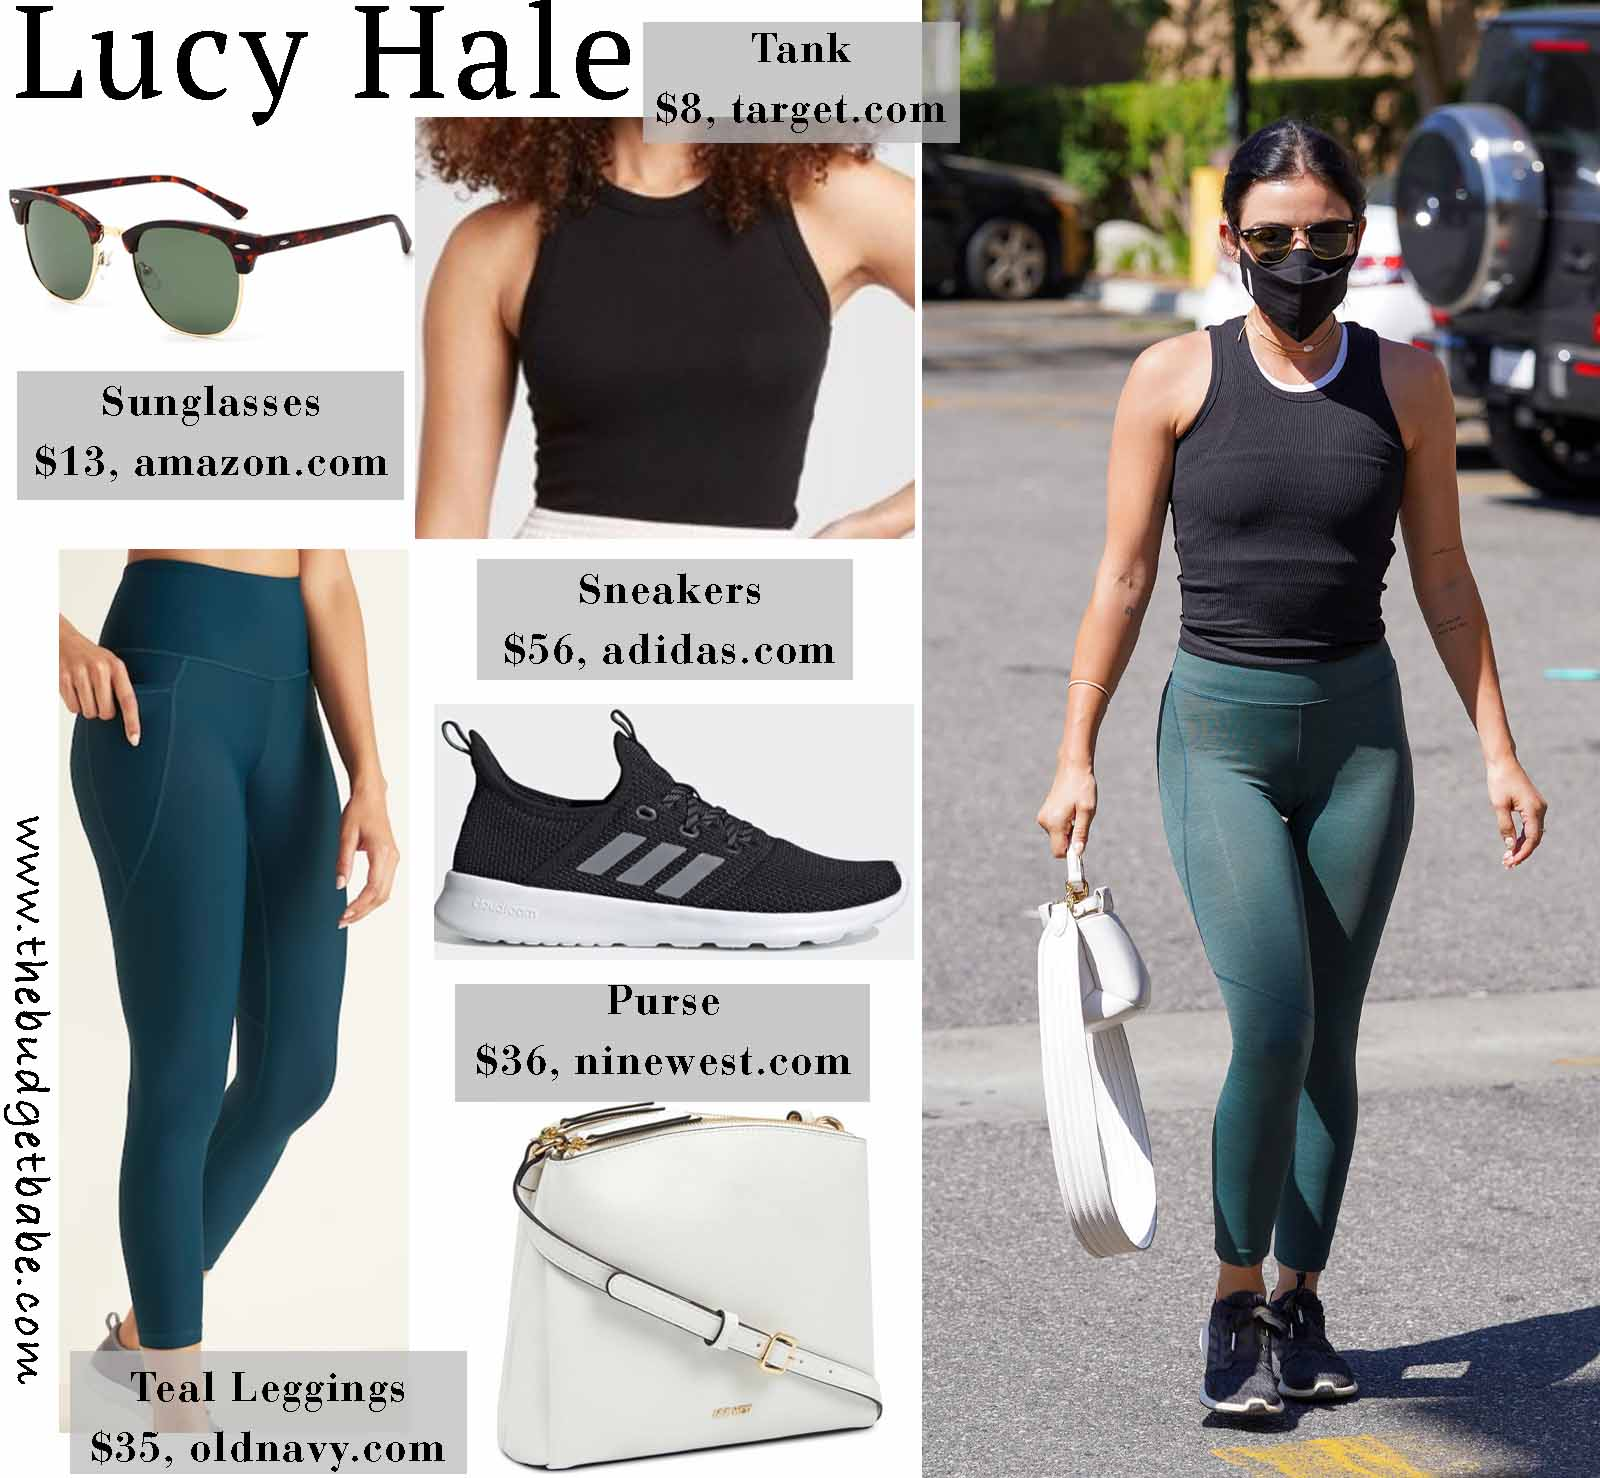 Get The Look: Lucy Hale's Teal Activewear Leggings and Adidas Edge 3 Lux Sneakers